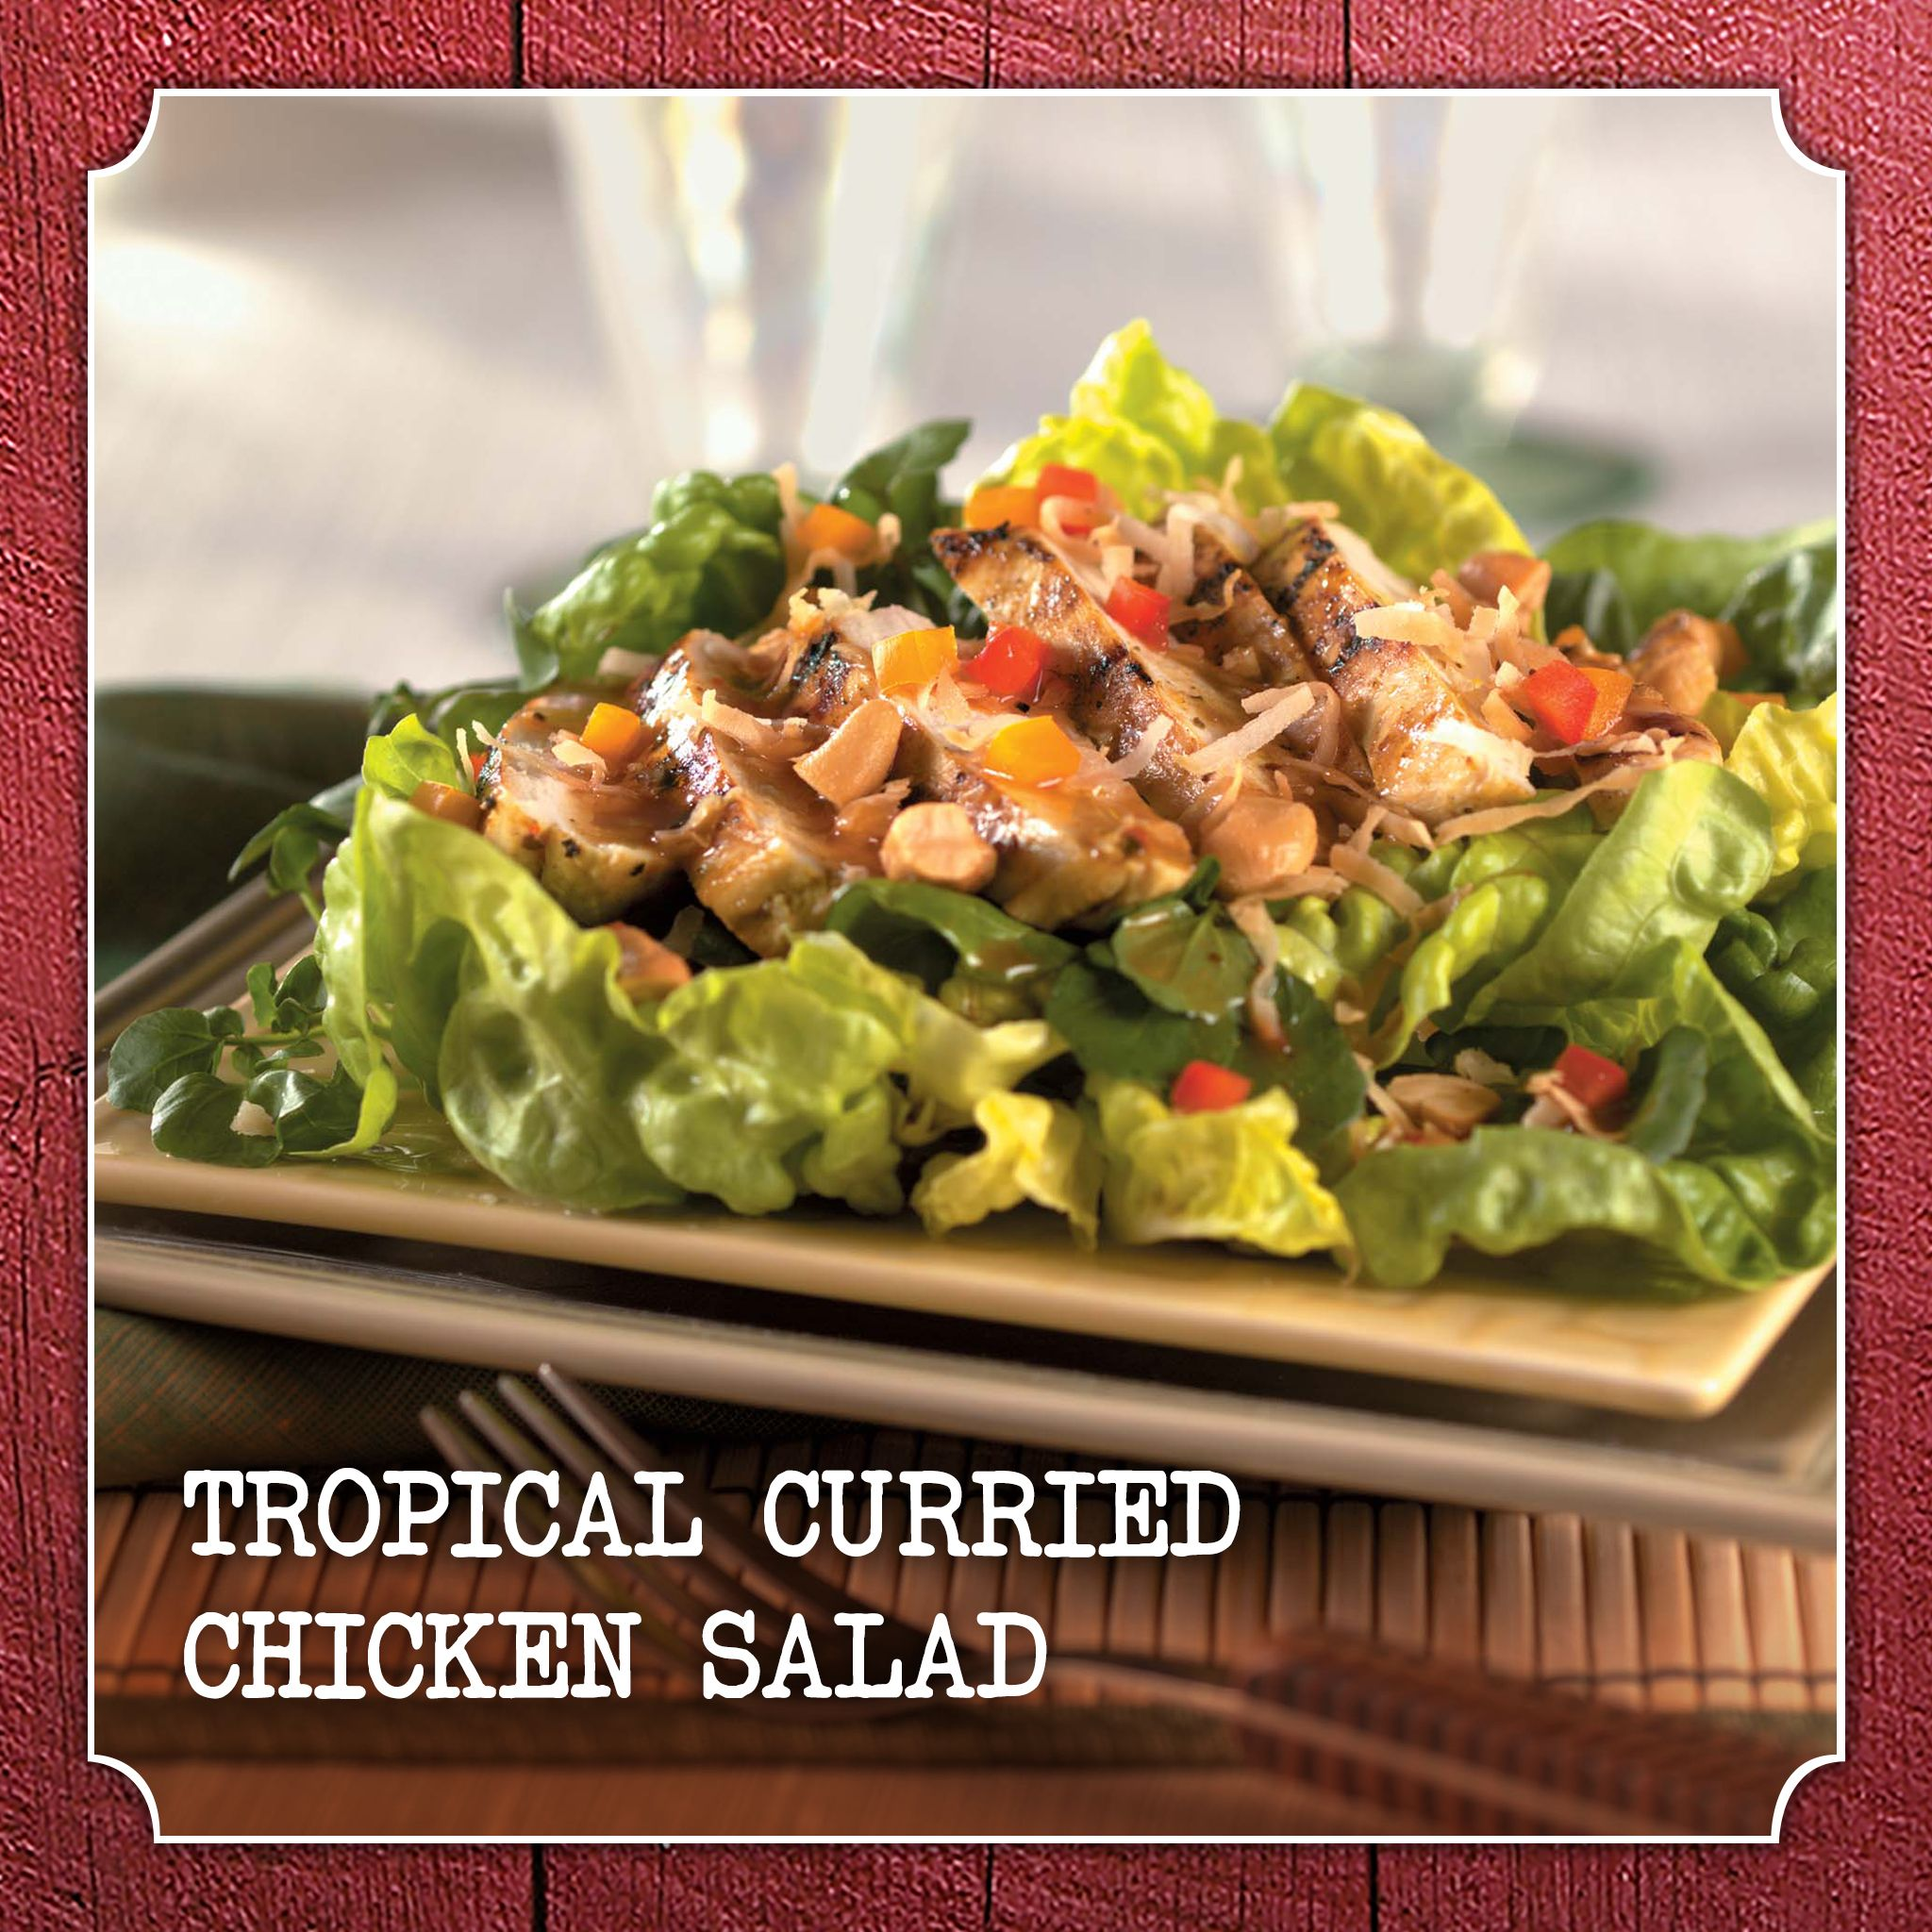 Tropical Curried Chicken Salad